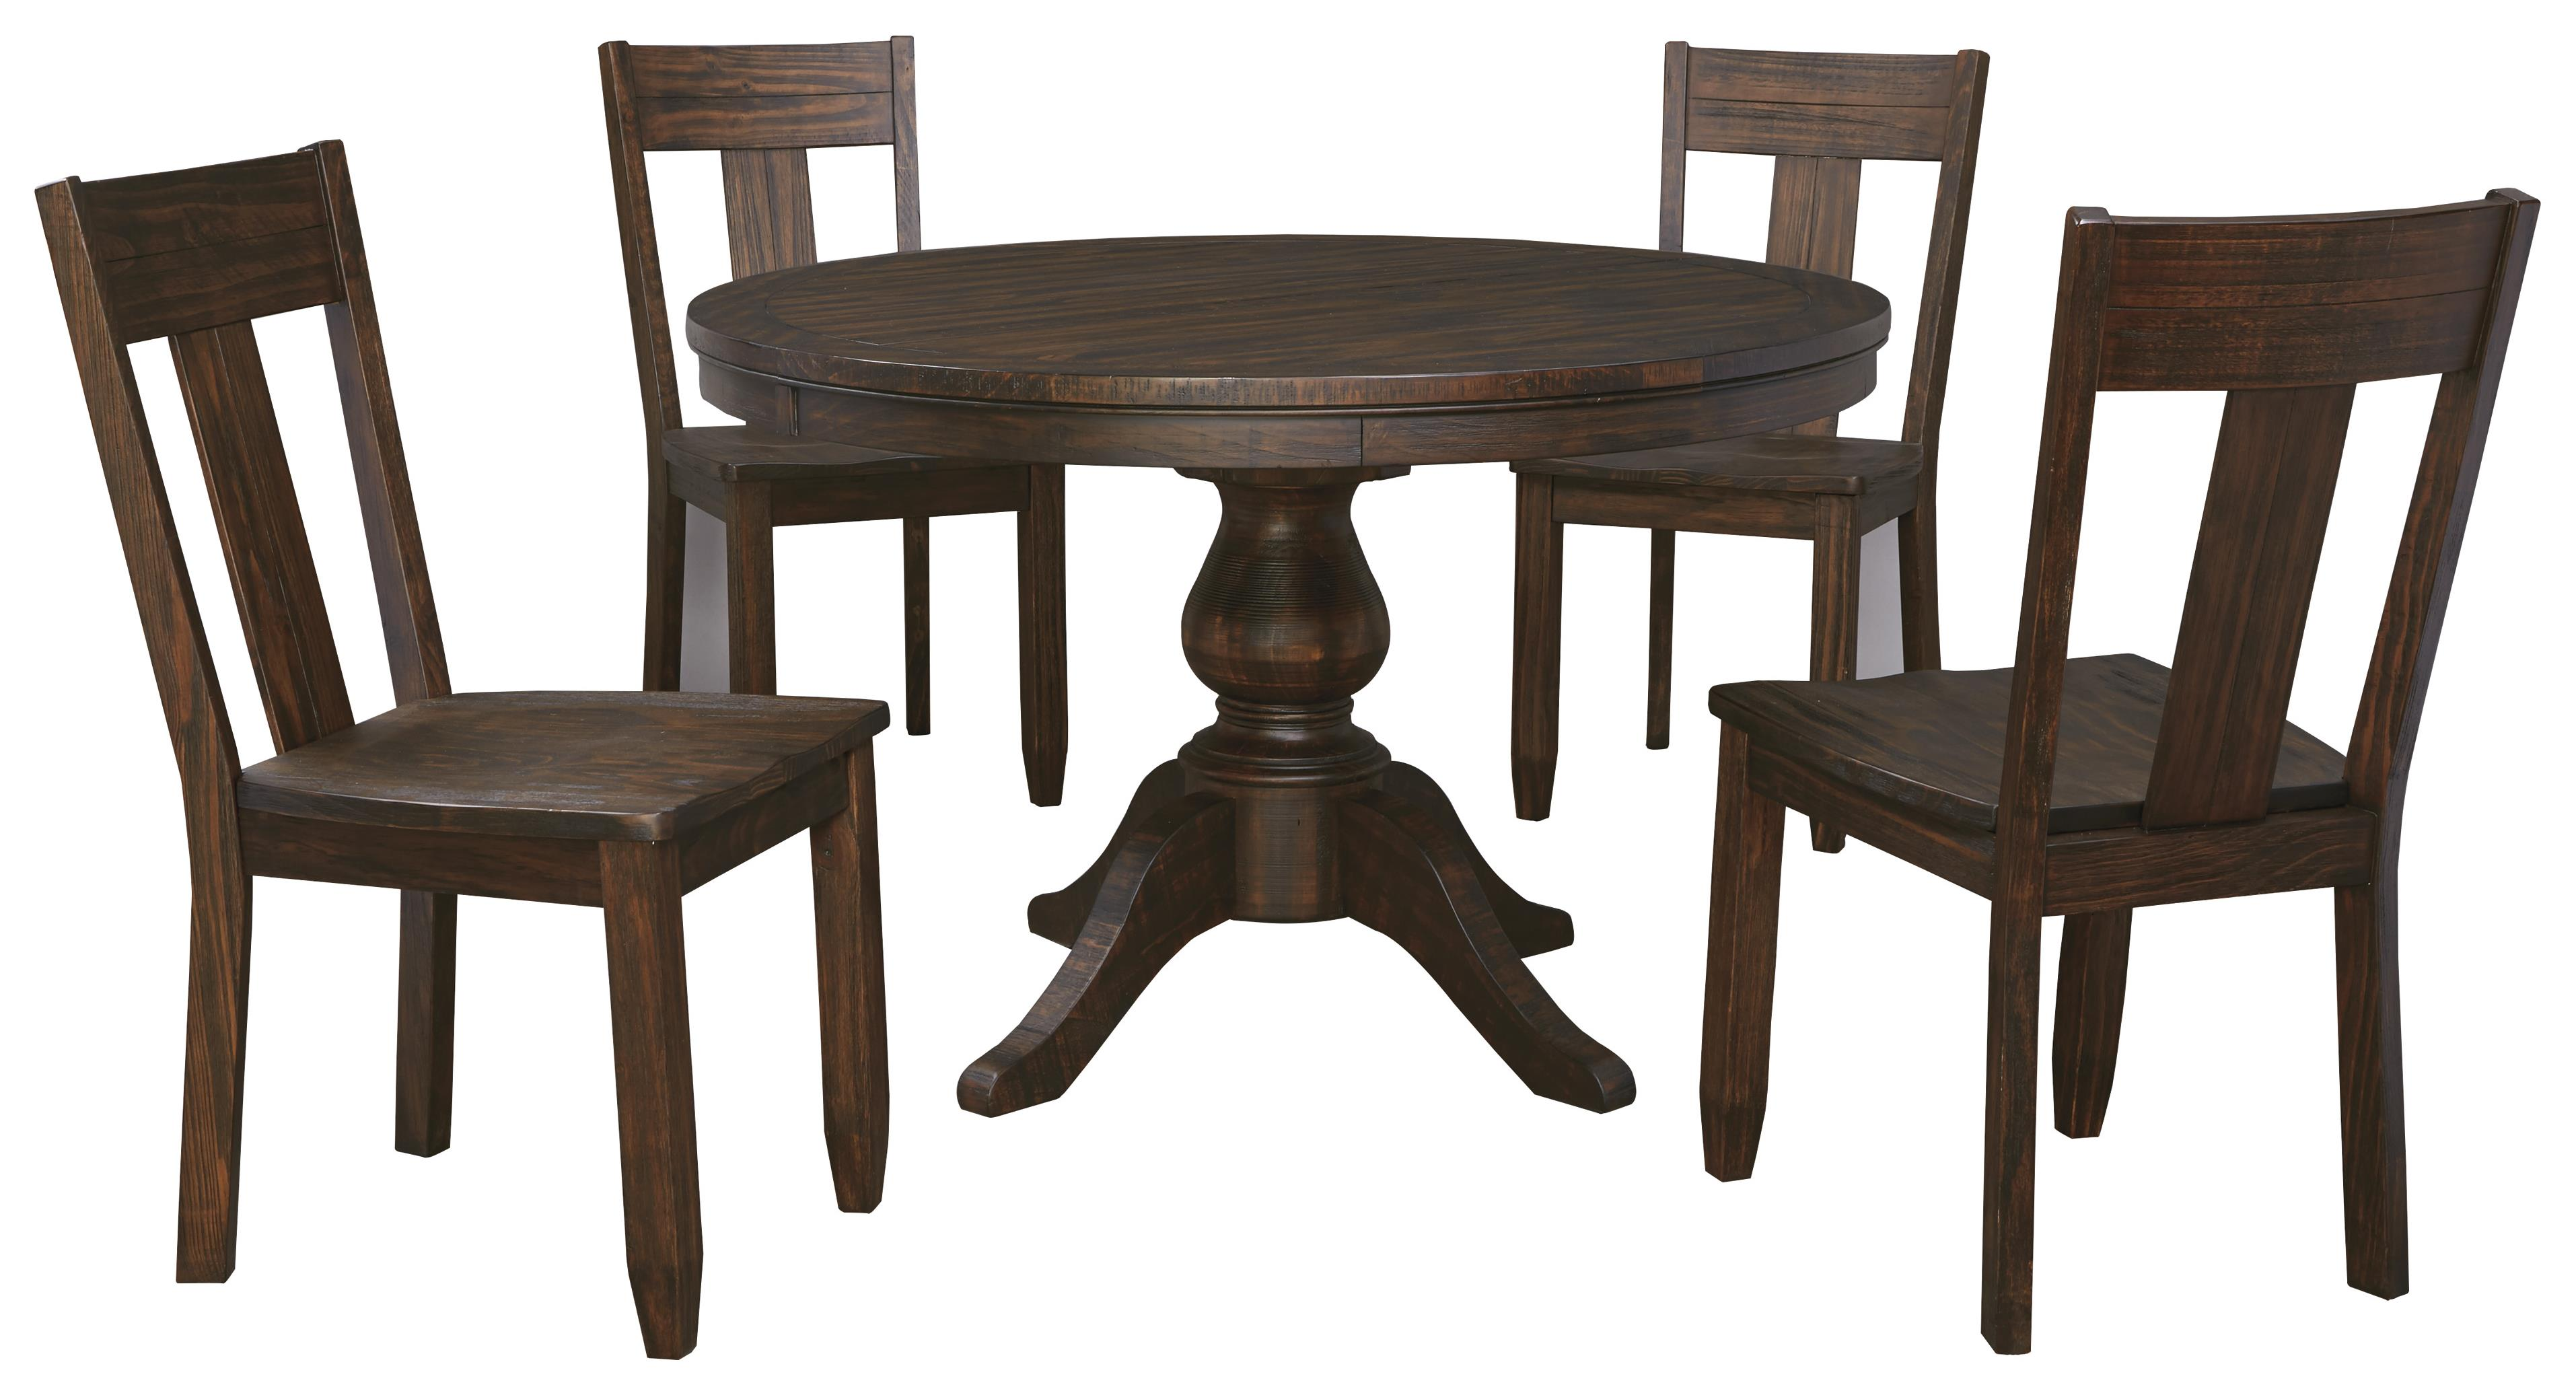 5 piece round dining table set with wood seat side chairs by signature design by ashley wolf. Black Bedroom Furniture Sets. Home Design Ideas